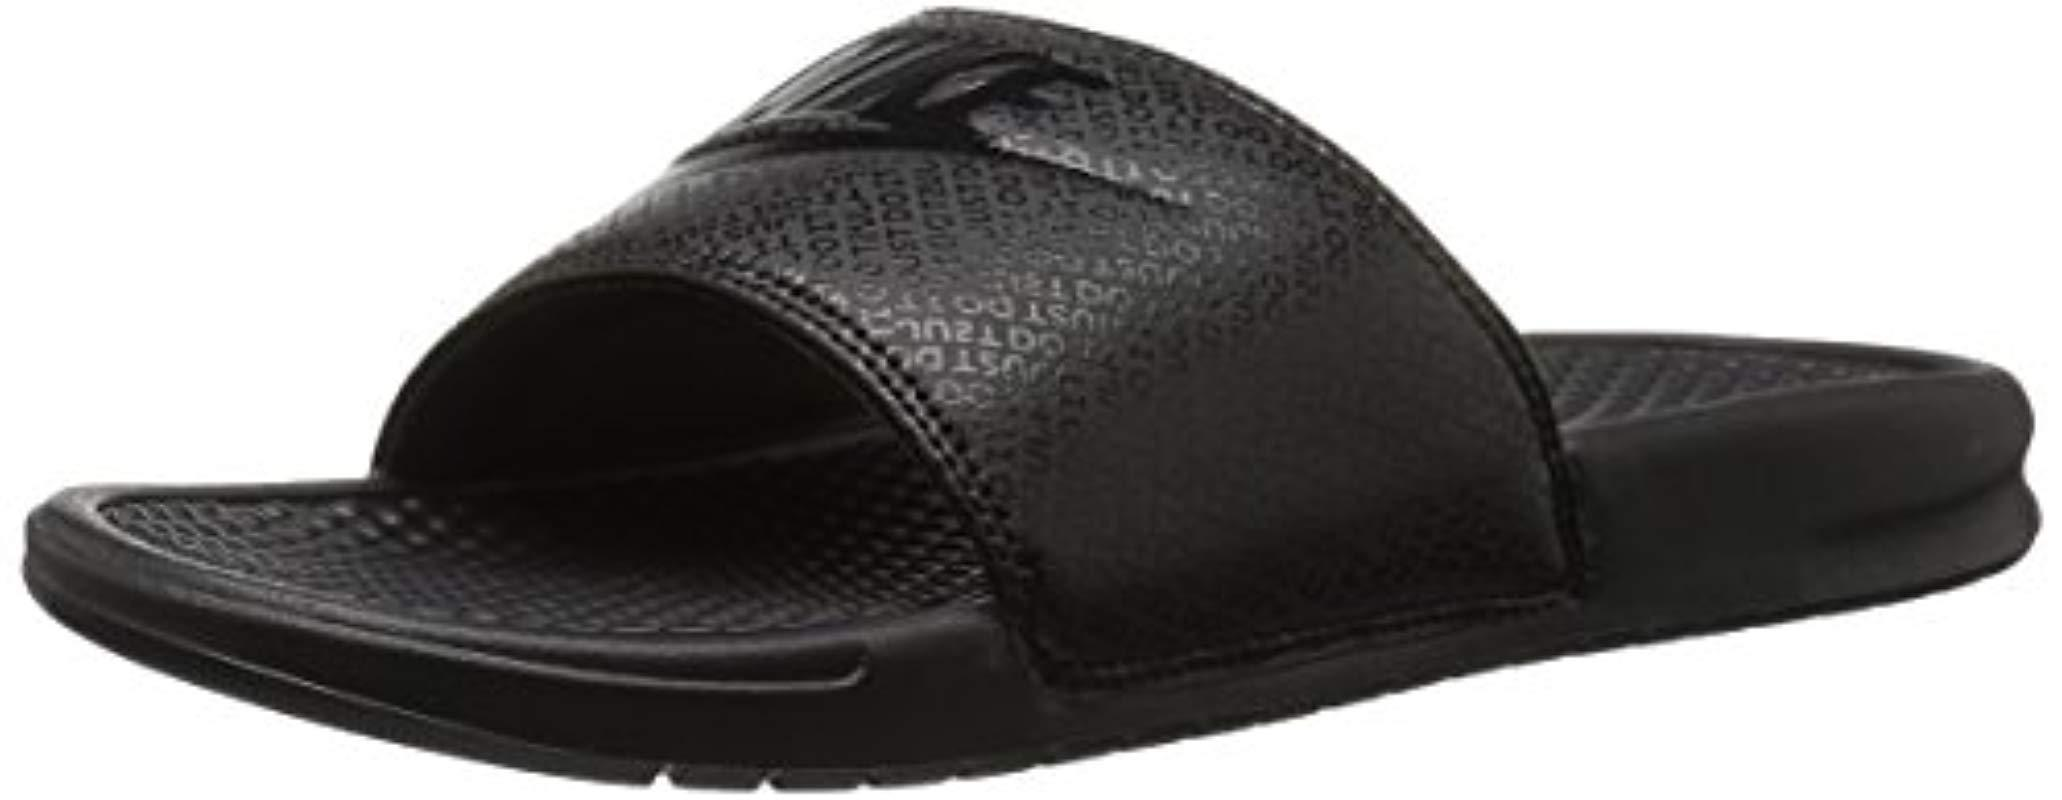 17f962eb6211 Lyst - Nike Benassi Just Do It Athletic Sandal in Black for Men ...